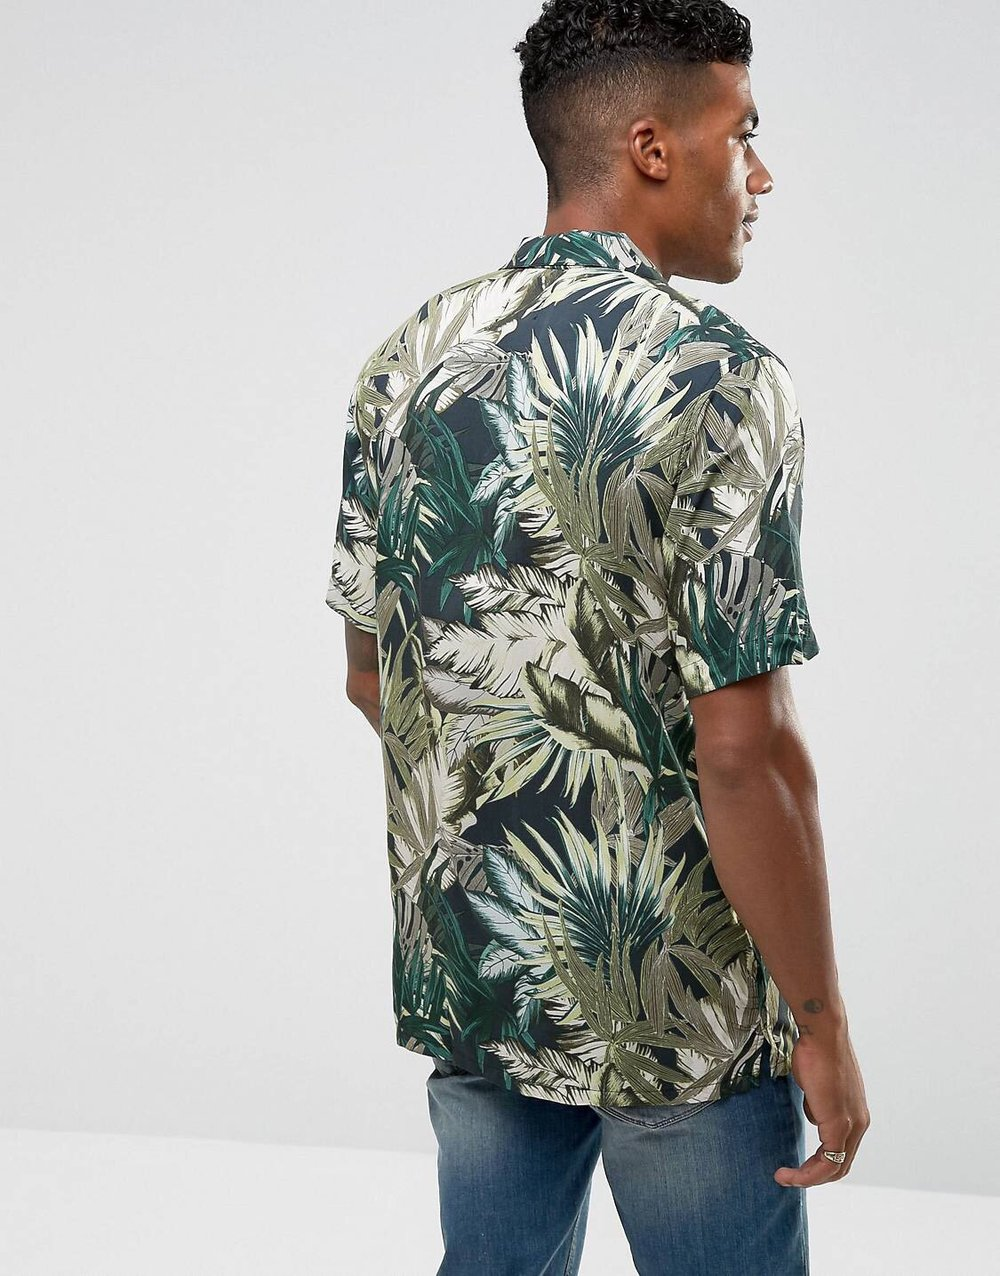 Â£21.99 Pull&Bear Revere Shirt - Feeling the price tag more than the actual print. Leaf prints are still loitering around but erm, it's been a while now. Time for them to wilt away to be honest. Y'all see what I did there? Leaf, wilt - Ayee